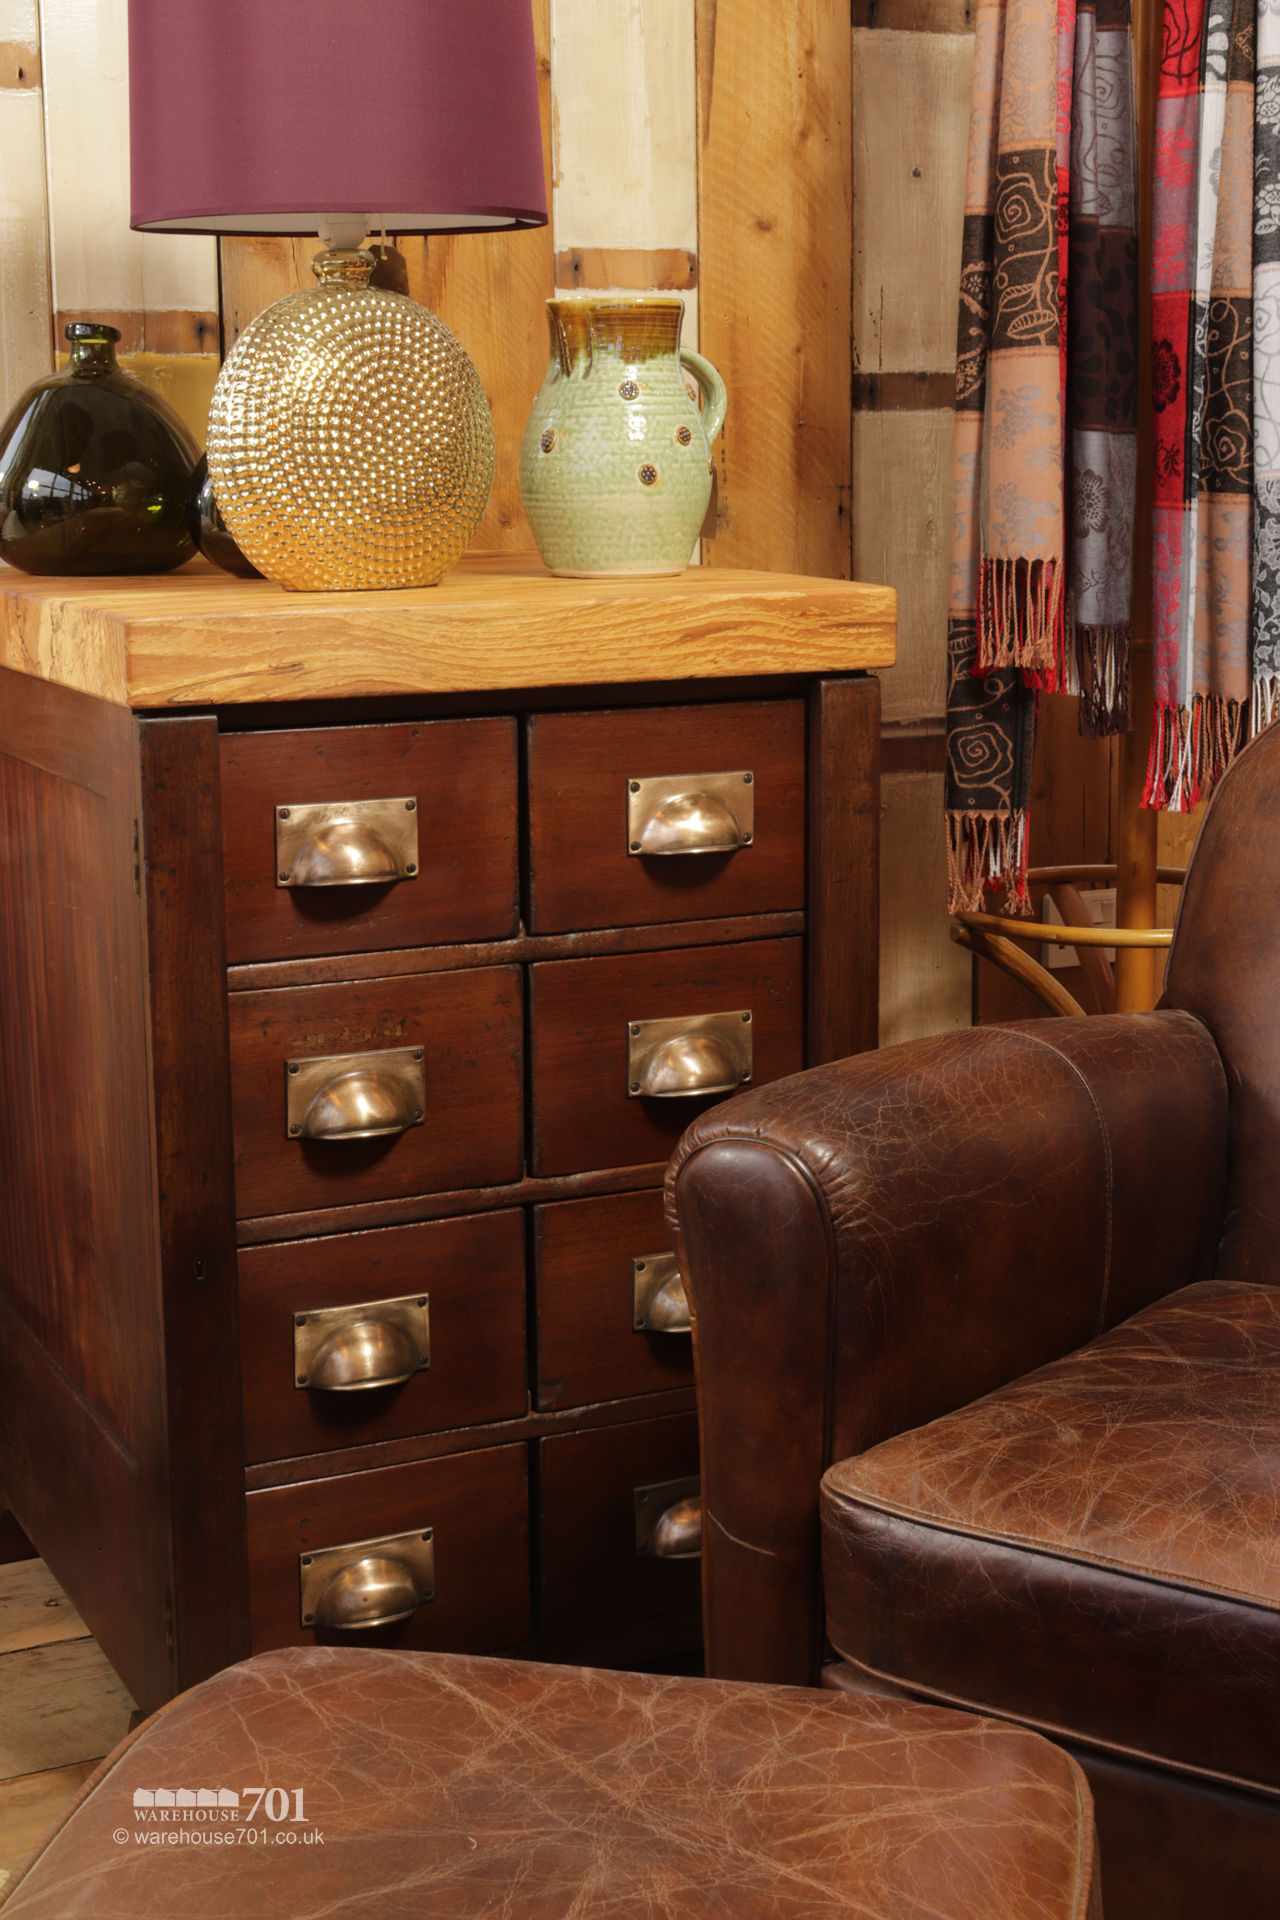 Salvaged Ex-Lloyds Bank Mahogany Locking Drawer Unit — Reclamation &  Architectural Salvage in Herefordshire - Warehouse 701